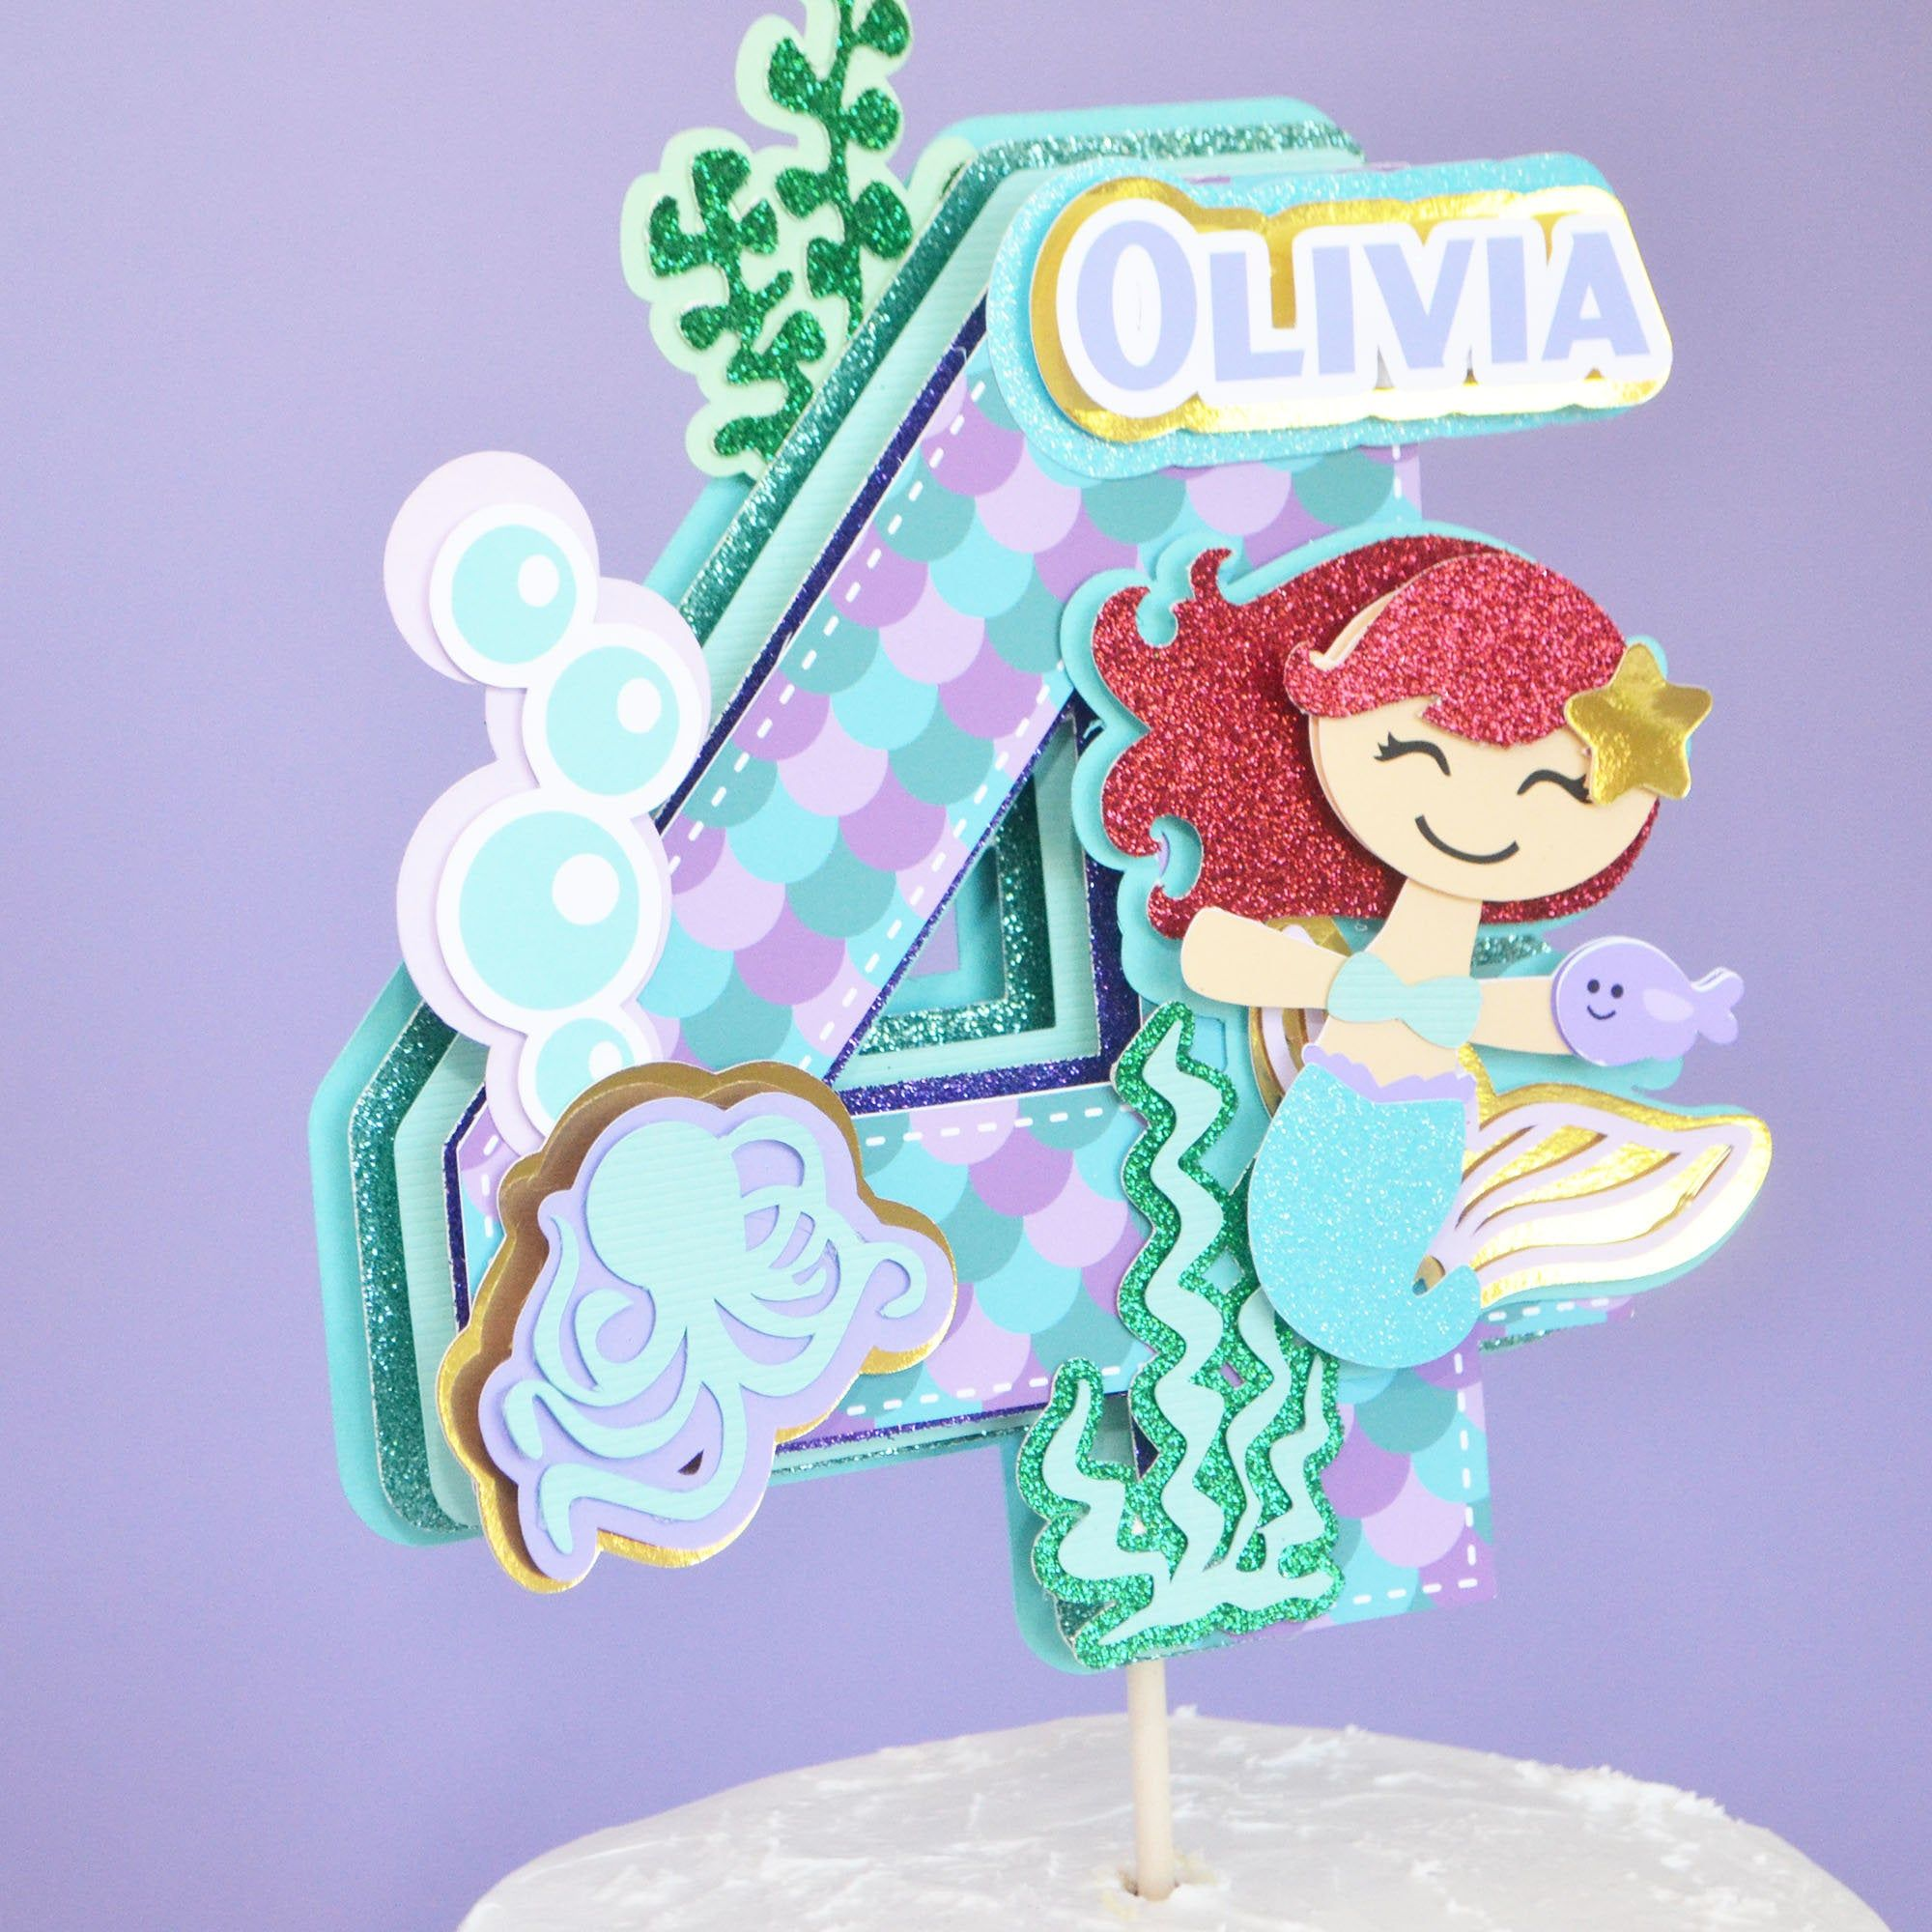 Mermaid Cake Topper Under The Sea Cake Topper Mermaid 3rd Birthday 100 Original Cake Topper By Gabyro Mermaid Cake Topper Mermaid Cakes Cake Banner Topper